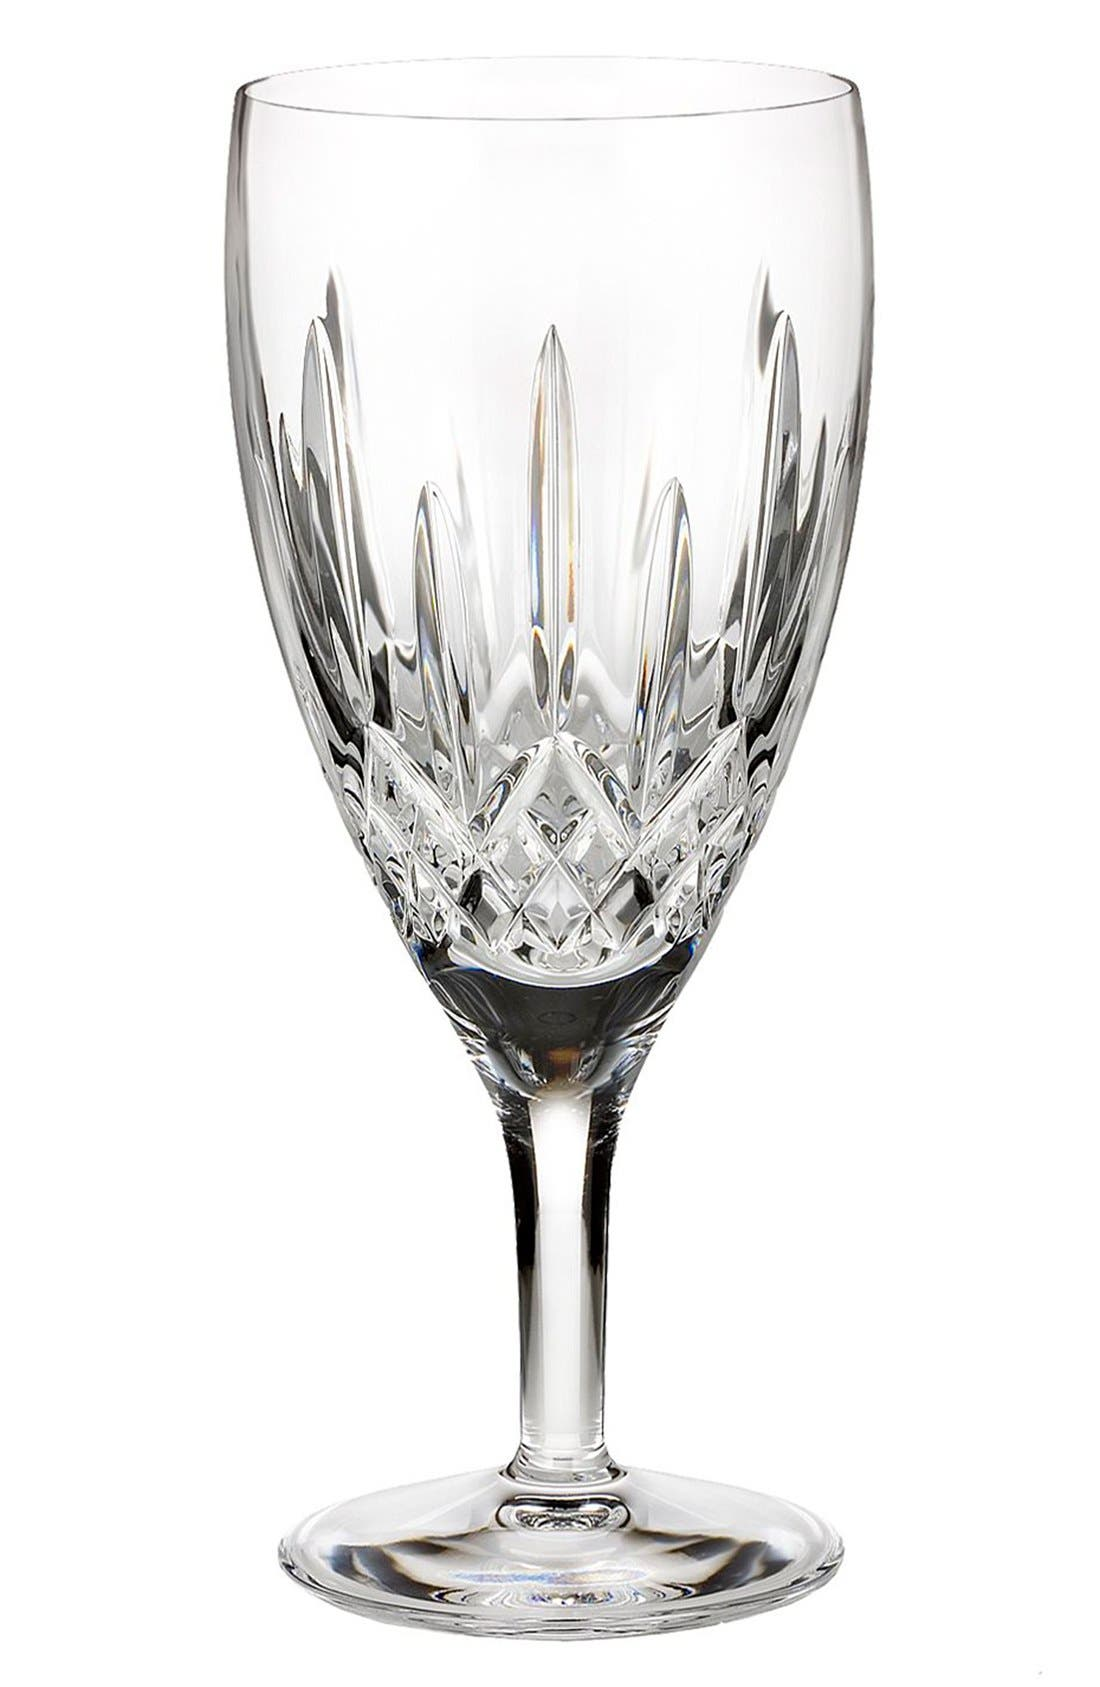 Main Image - Waterford 'Lismore Nouveau' Lead Crystal Iced Beverage Glass